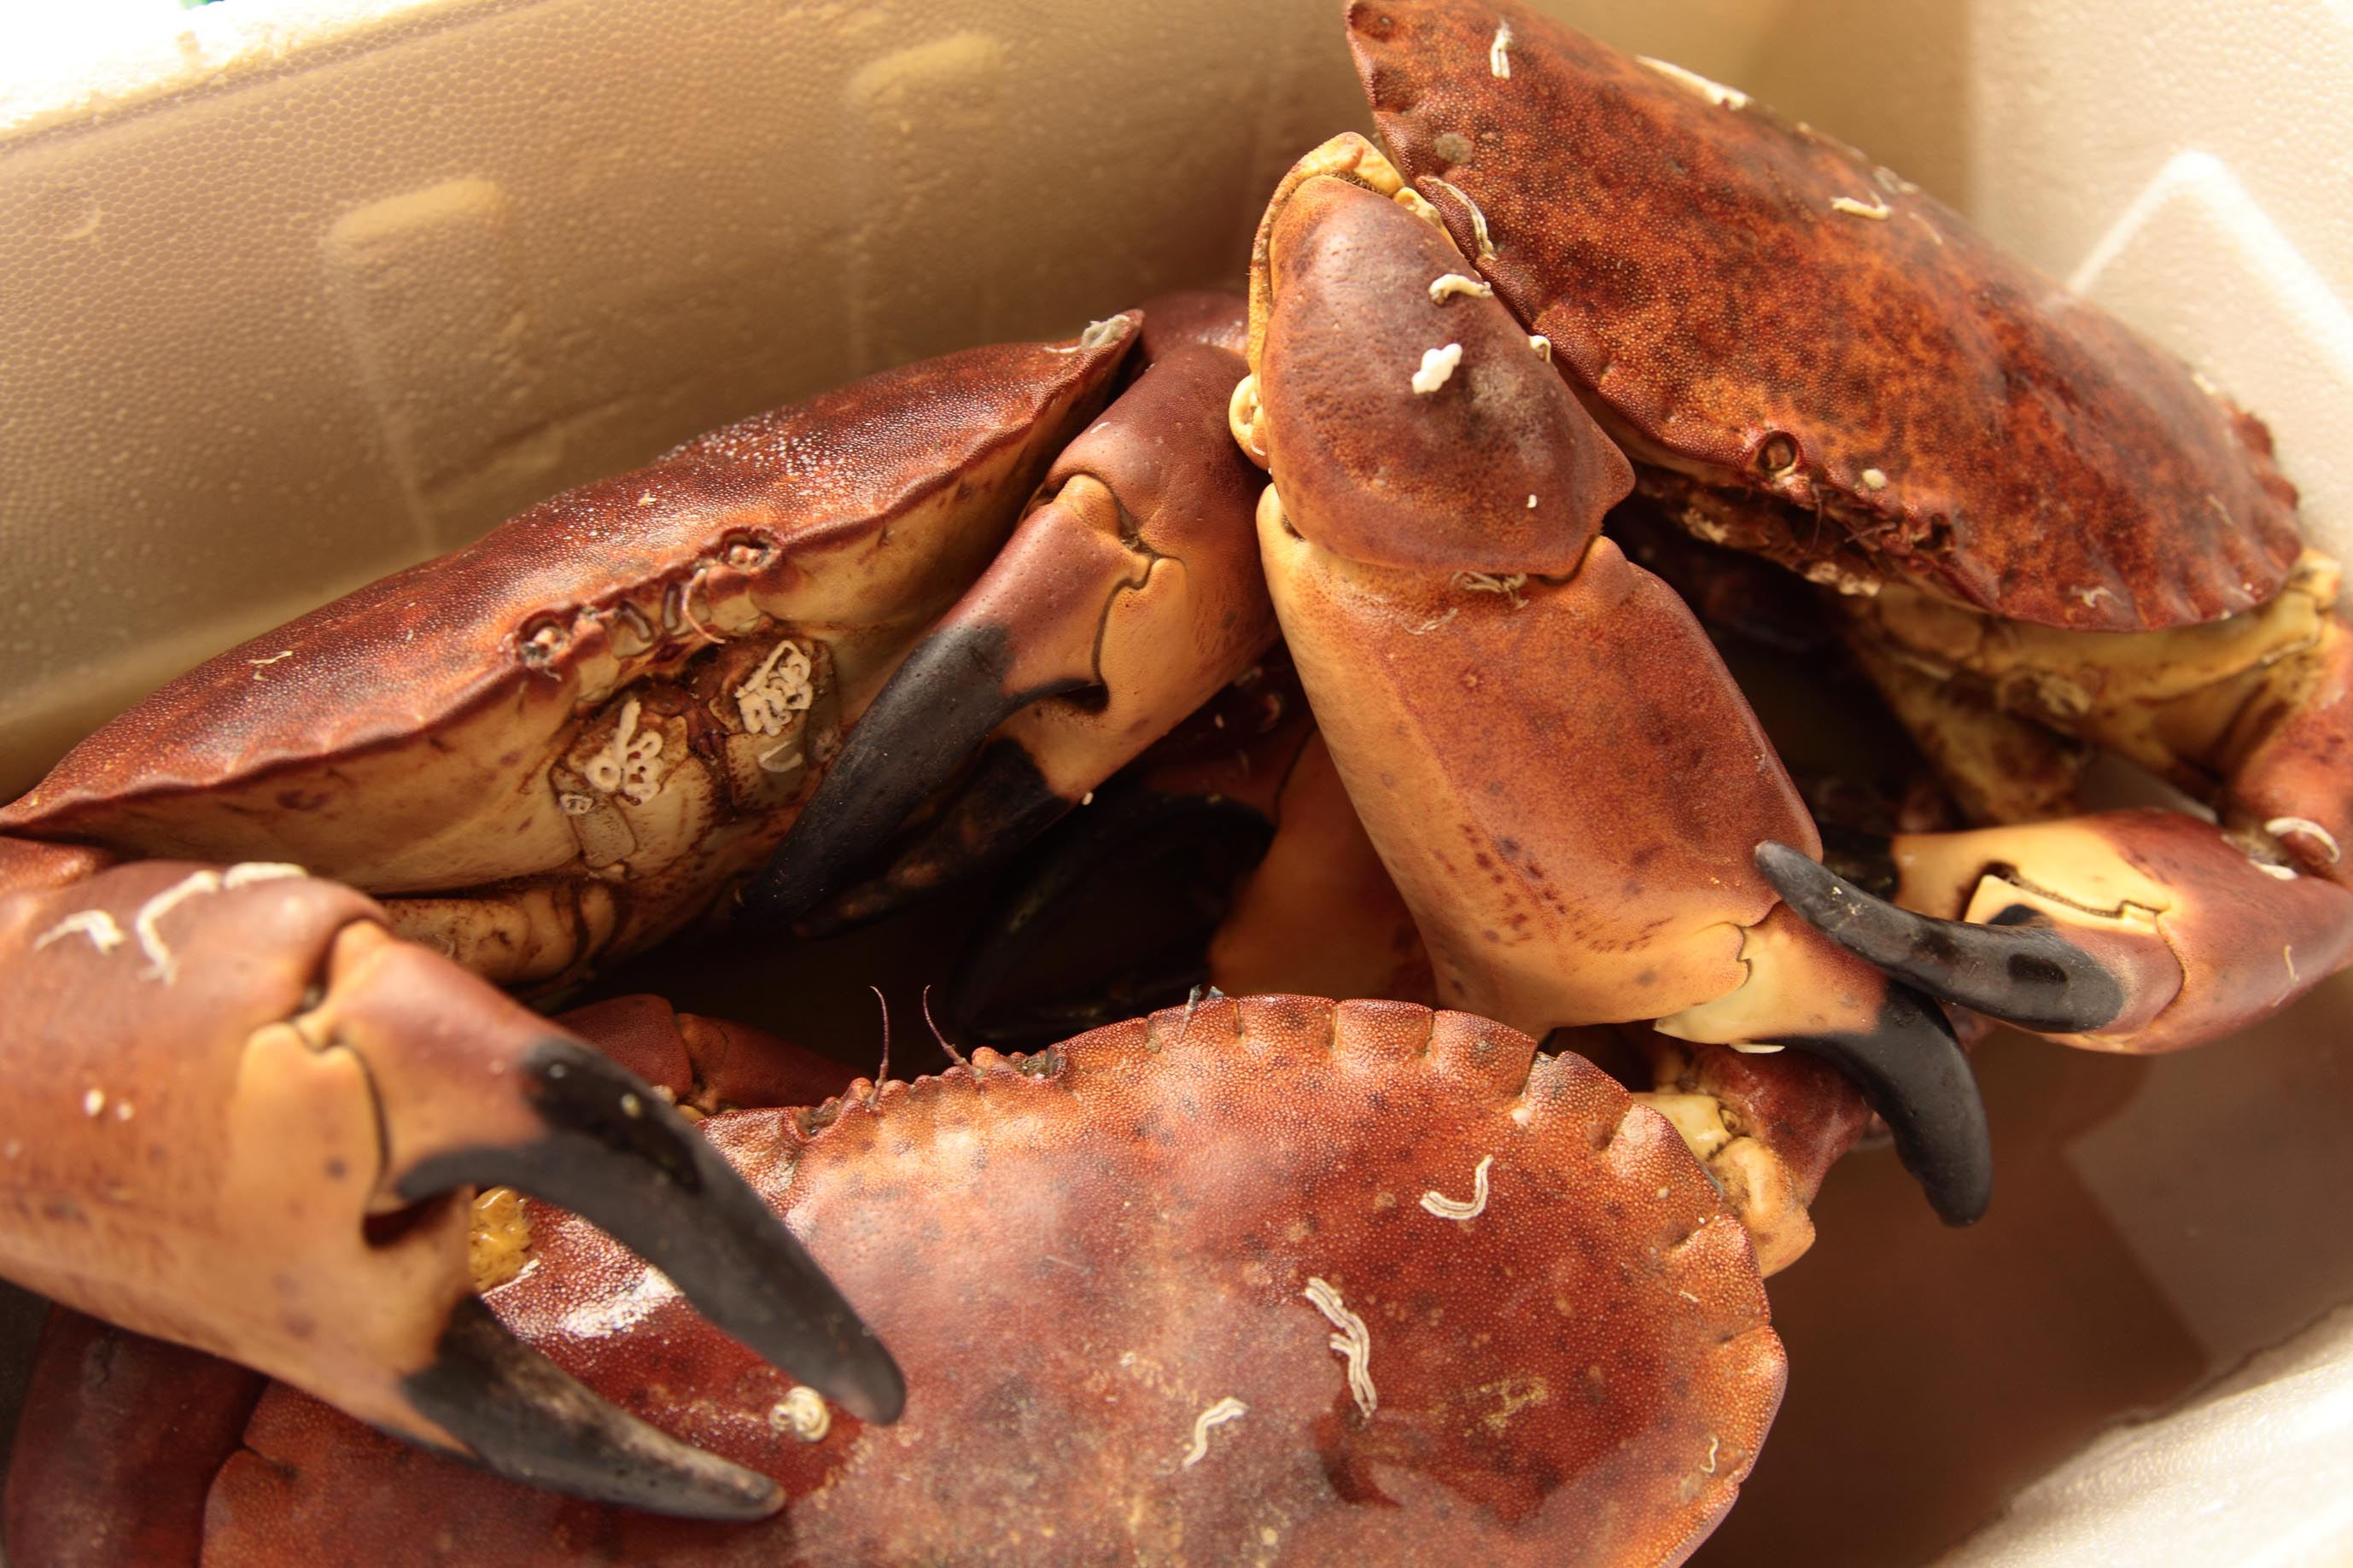 How To Remove Meat From A Crab Great British Chefs